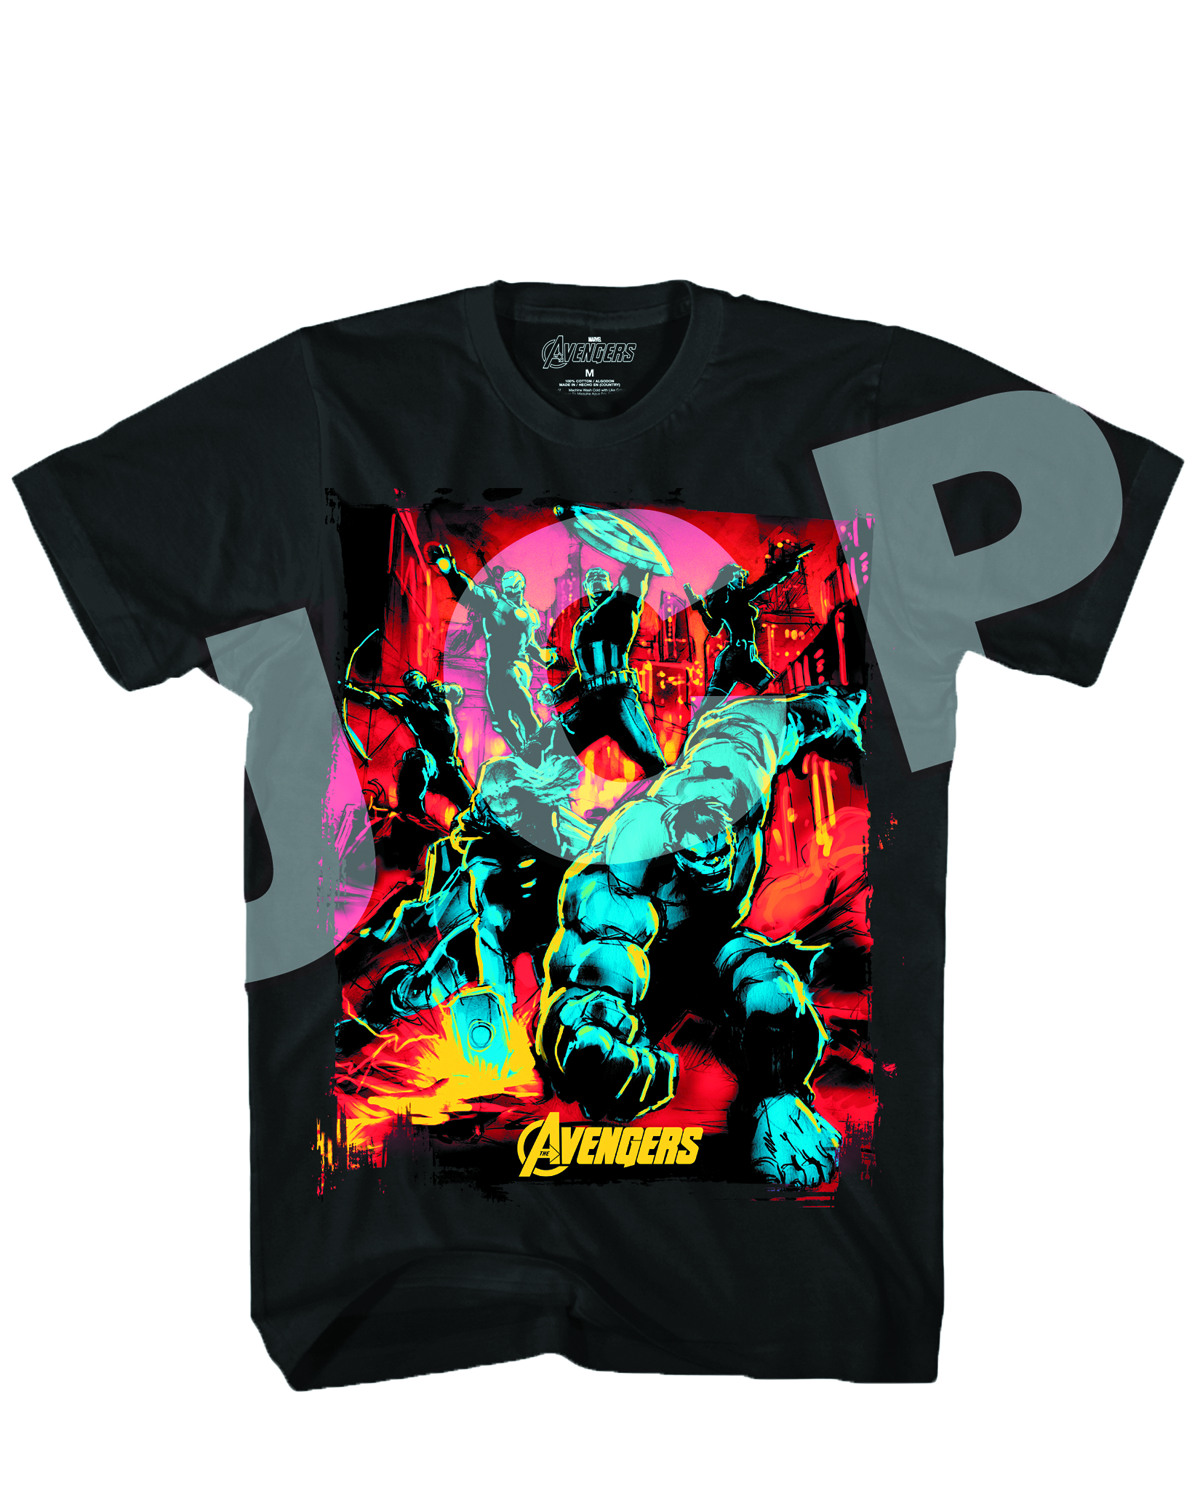 AVENGERS STREETS ON FIRE BLACK T/S MED